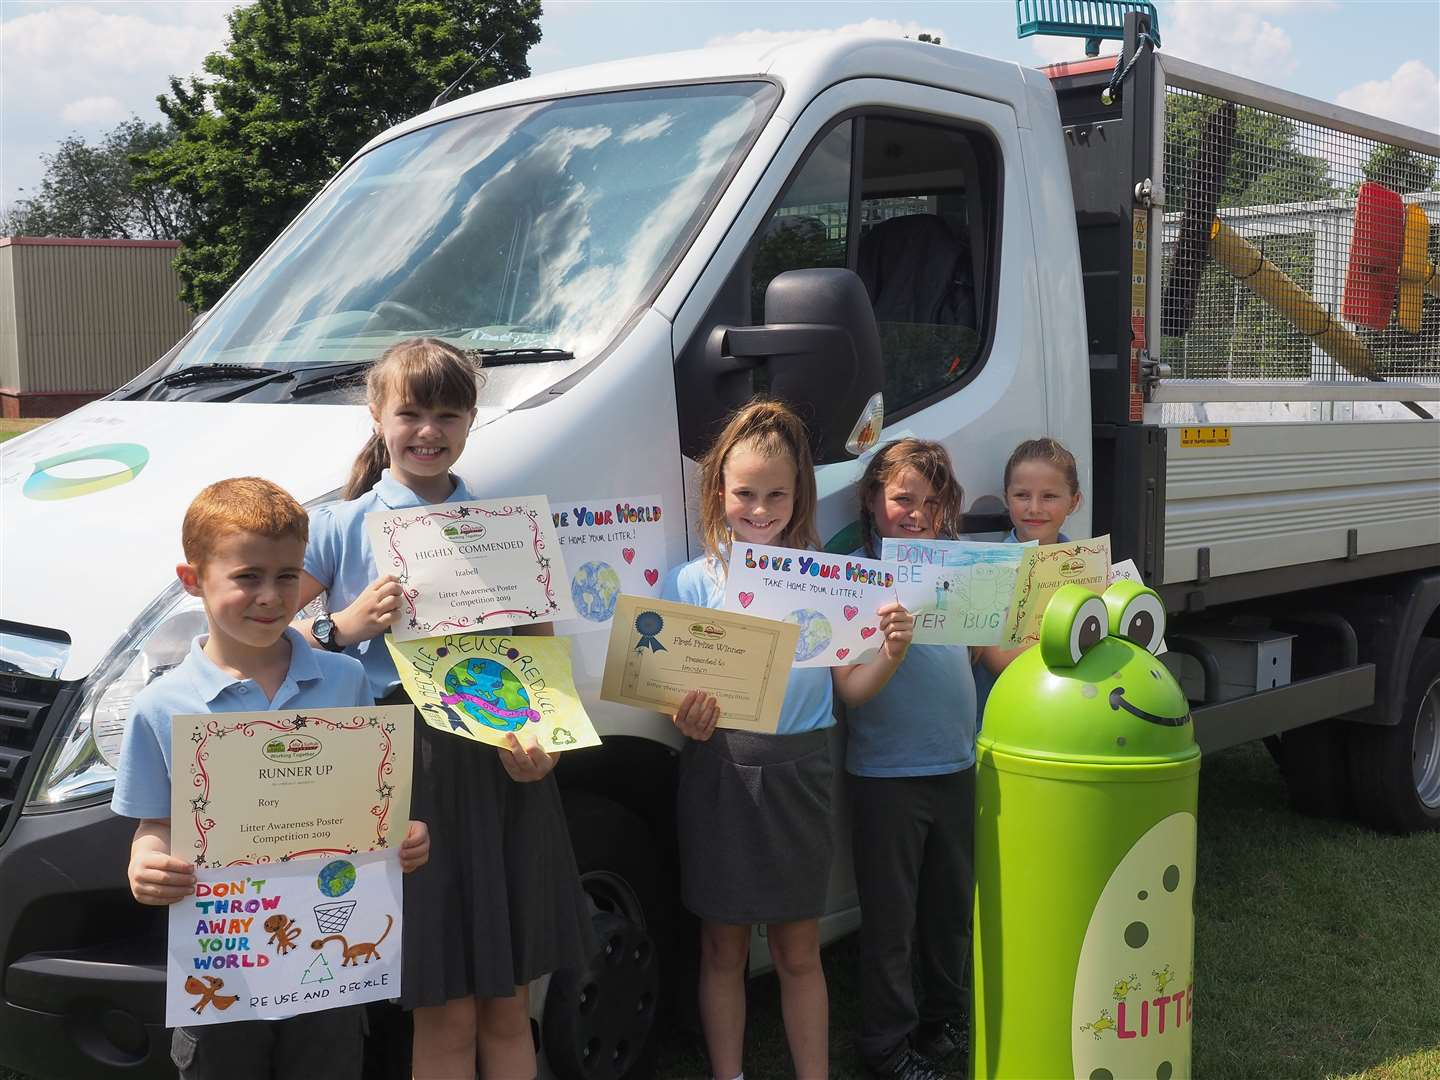 The 2019 Babergh District Council litter awareness poster competition winner, Imogen (centre), of St Mary's Church of England Primary School in Hadleigh, with runners-up and commended entrants Rory, Isla, Hollie and Izabell. Contributed picture. (14227109)